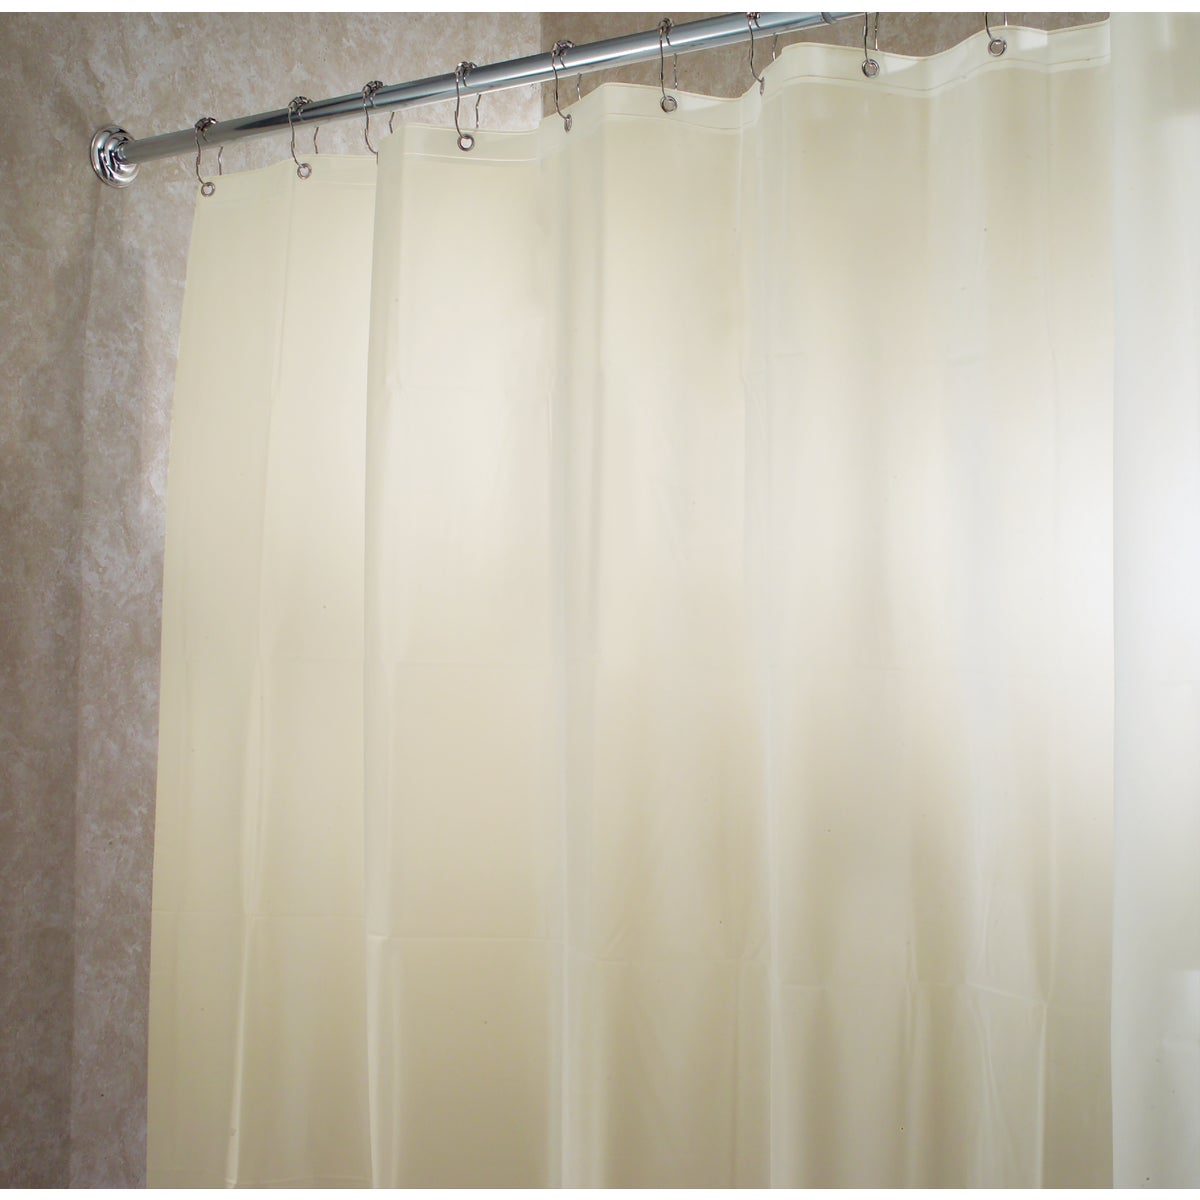 SHOWER CURTAIN LINER - 14755 by Interdesign Inc